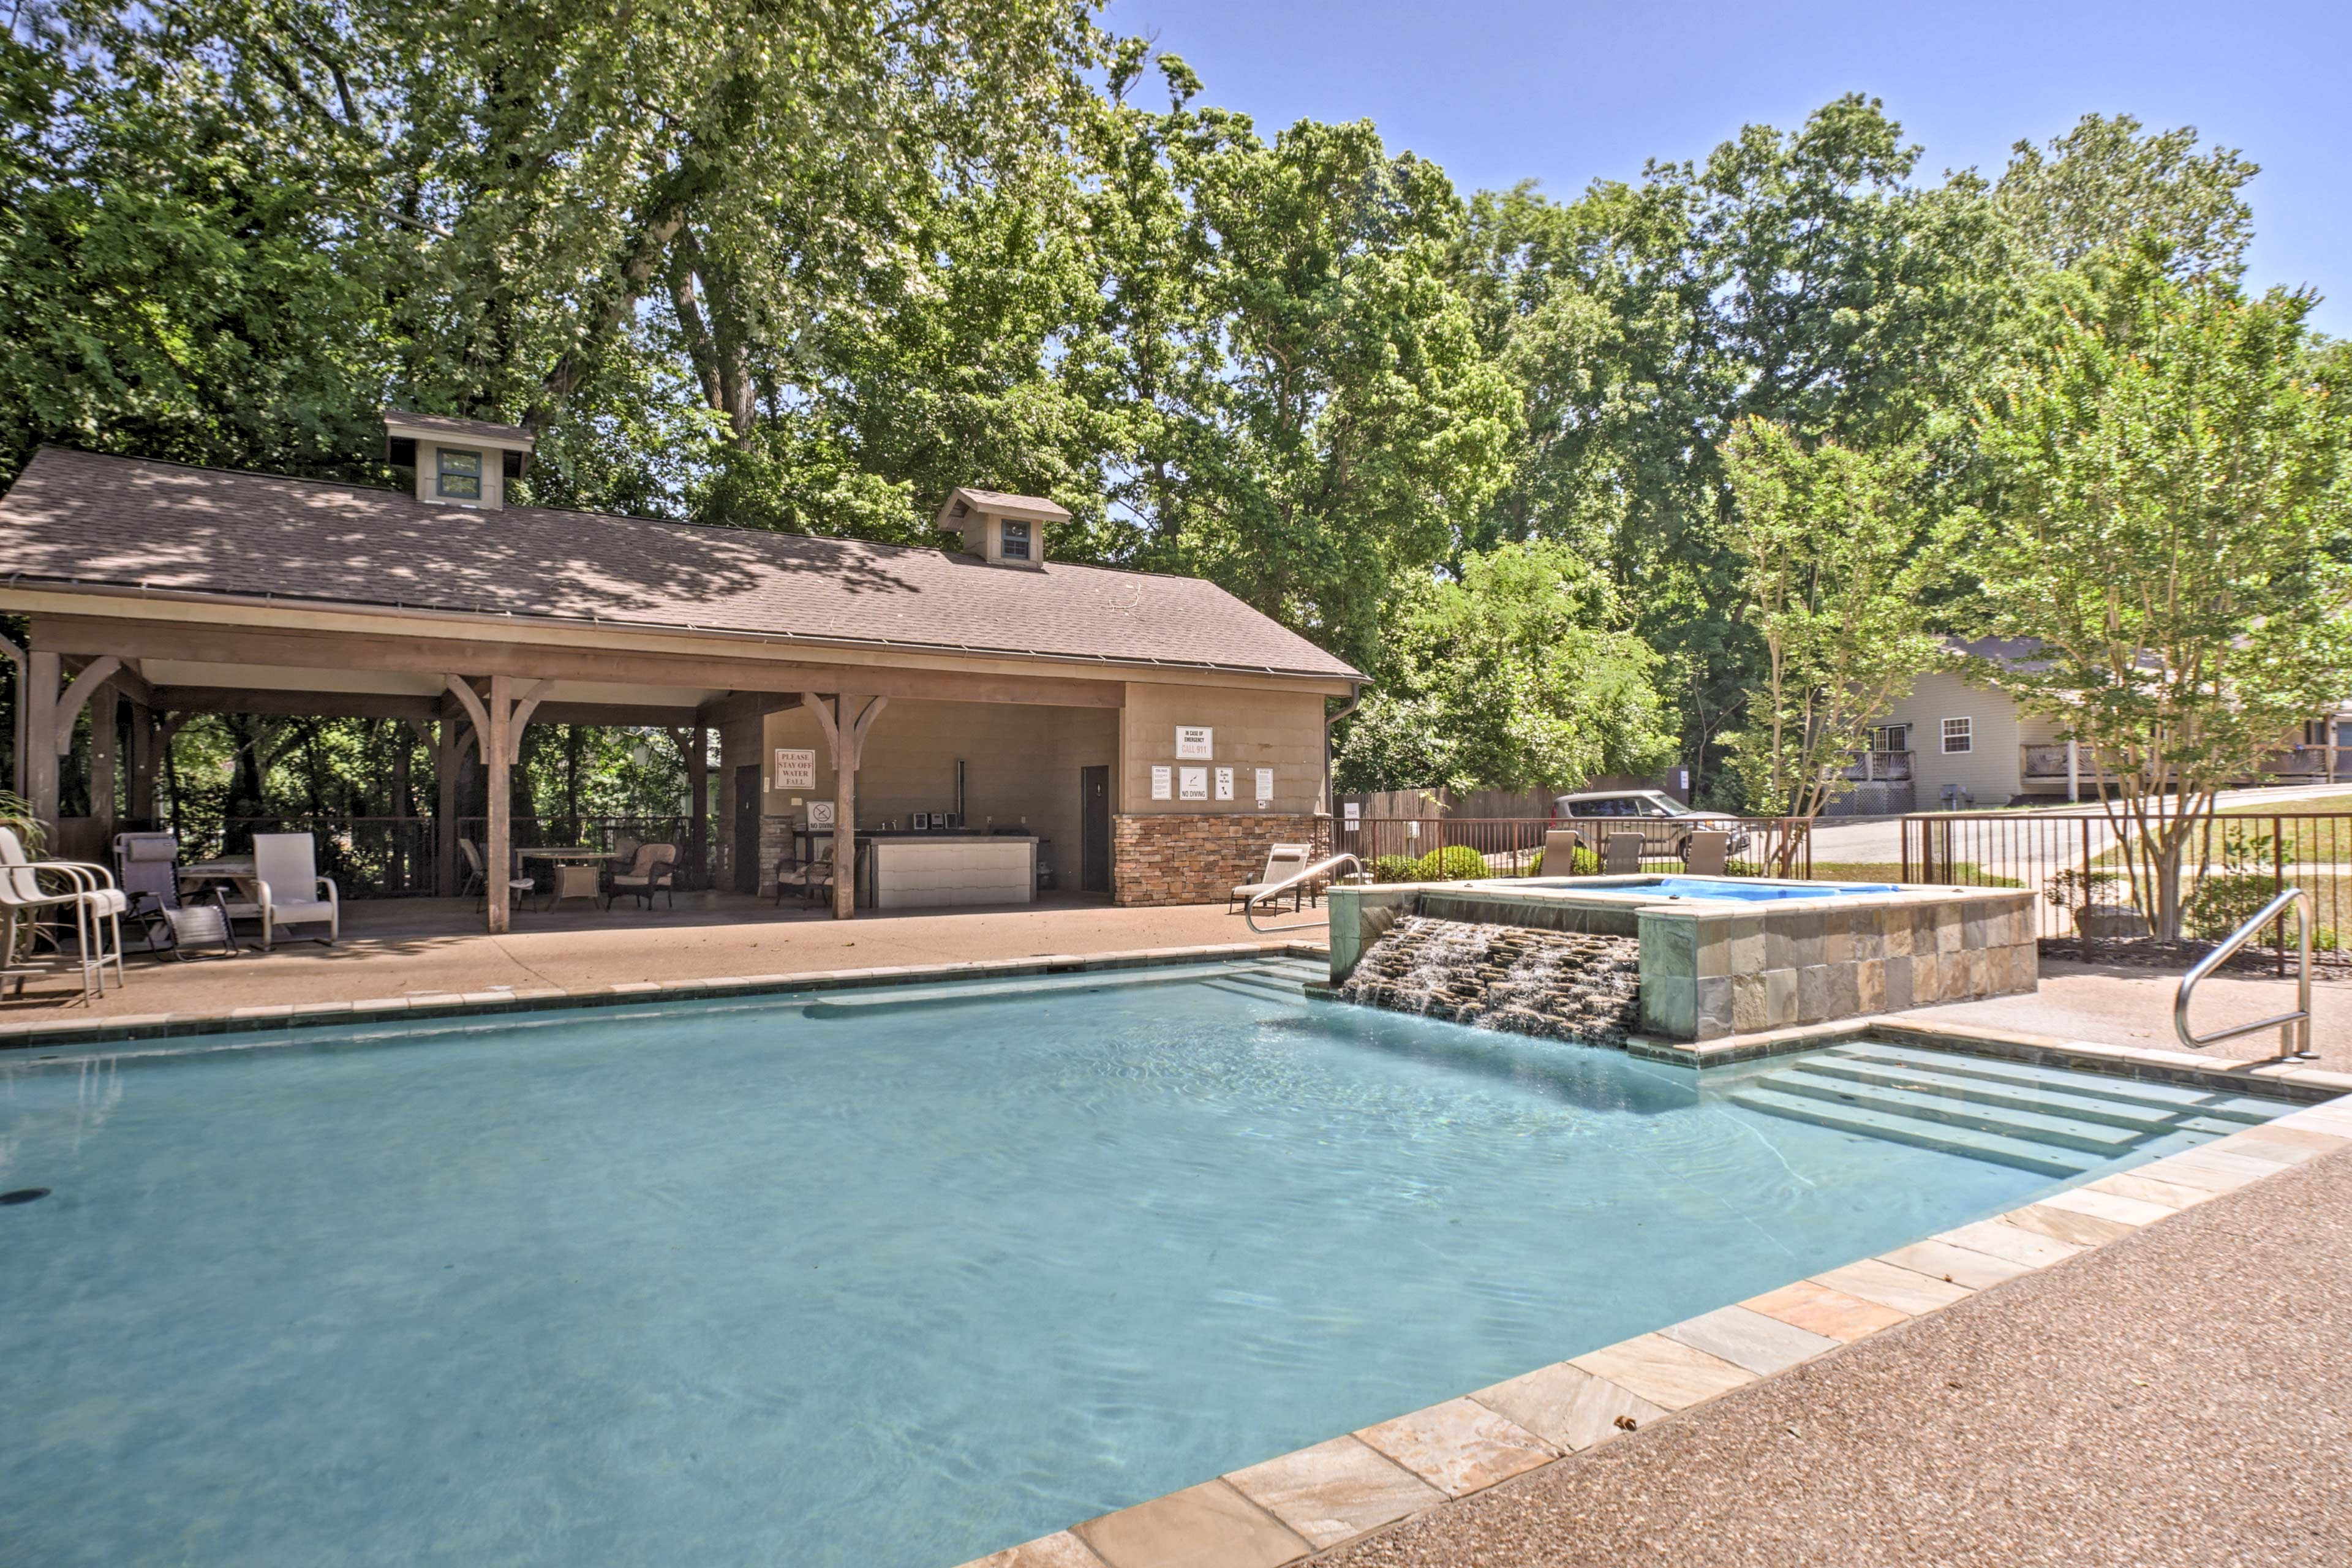 The community pool boasts a luxurious design.